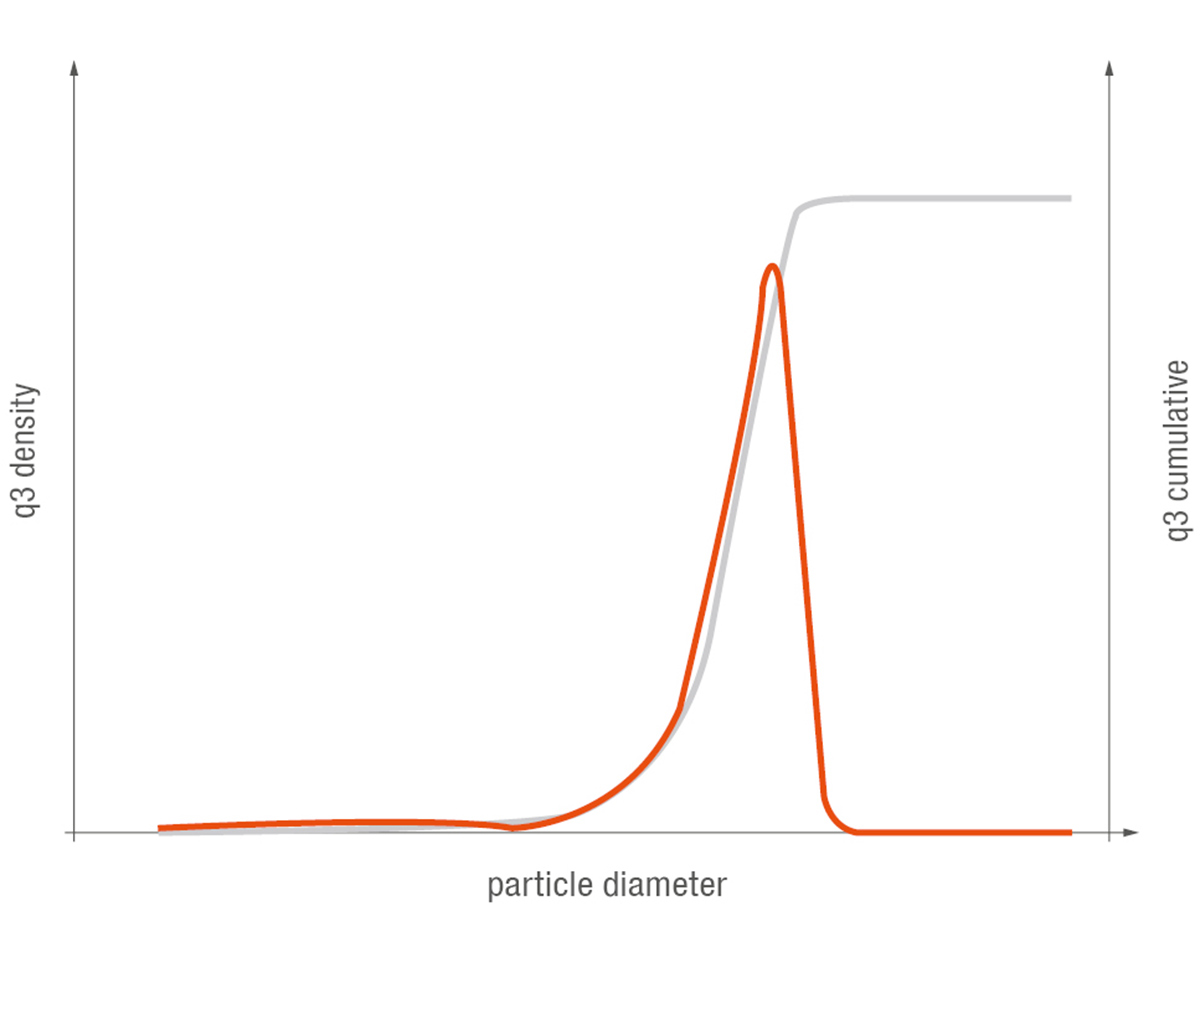 Figure 2: Particle size distribution of a powder coating (q3 density in red and q3 cumulative in gray)